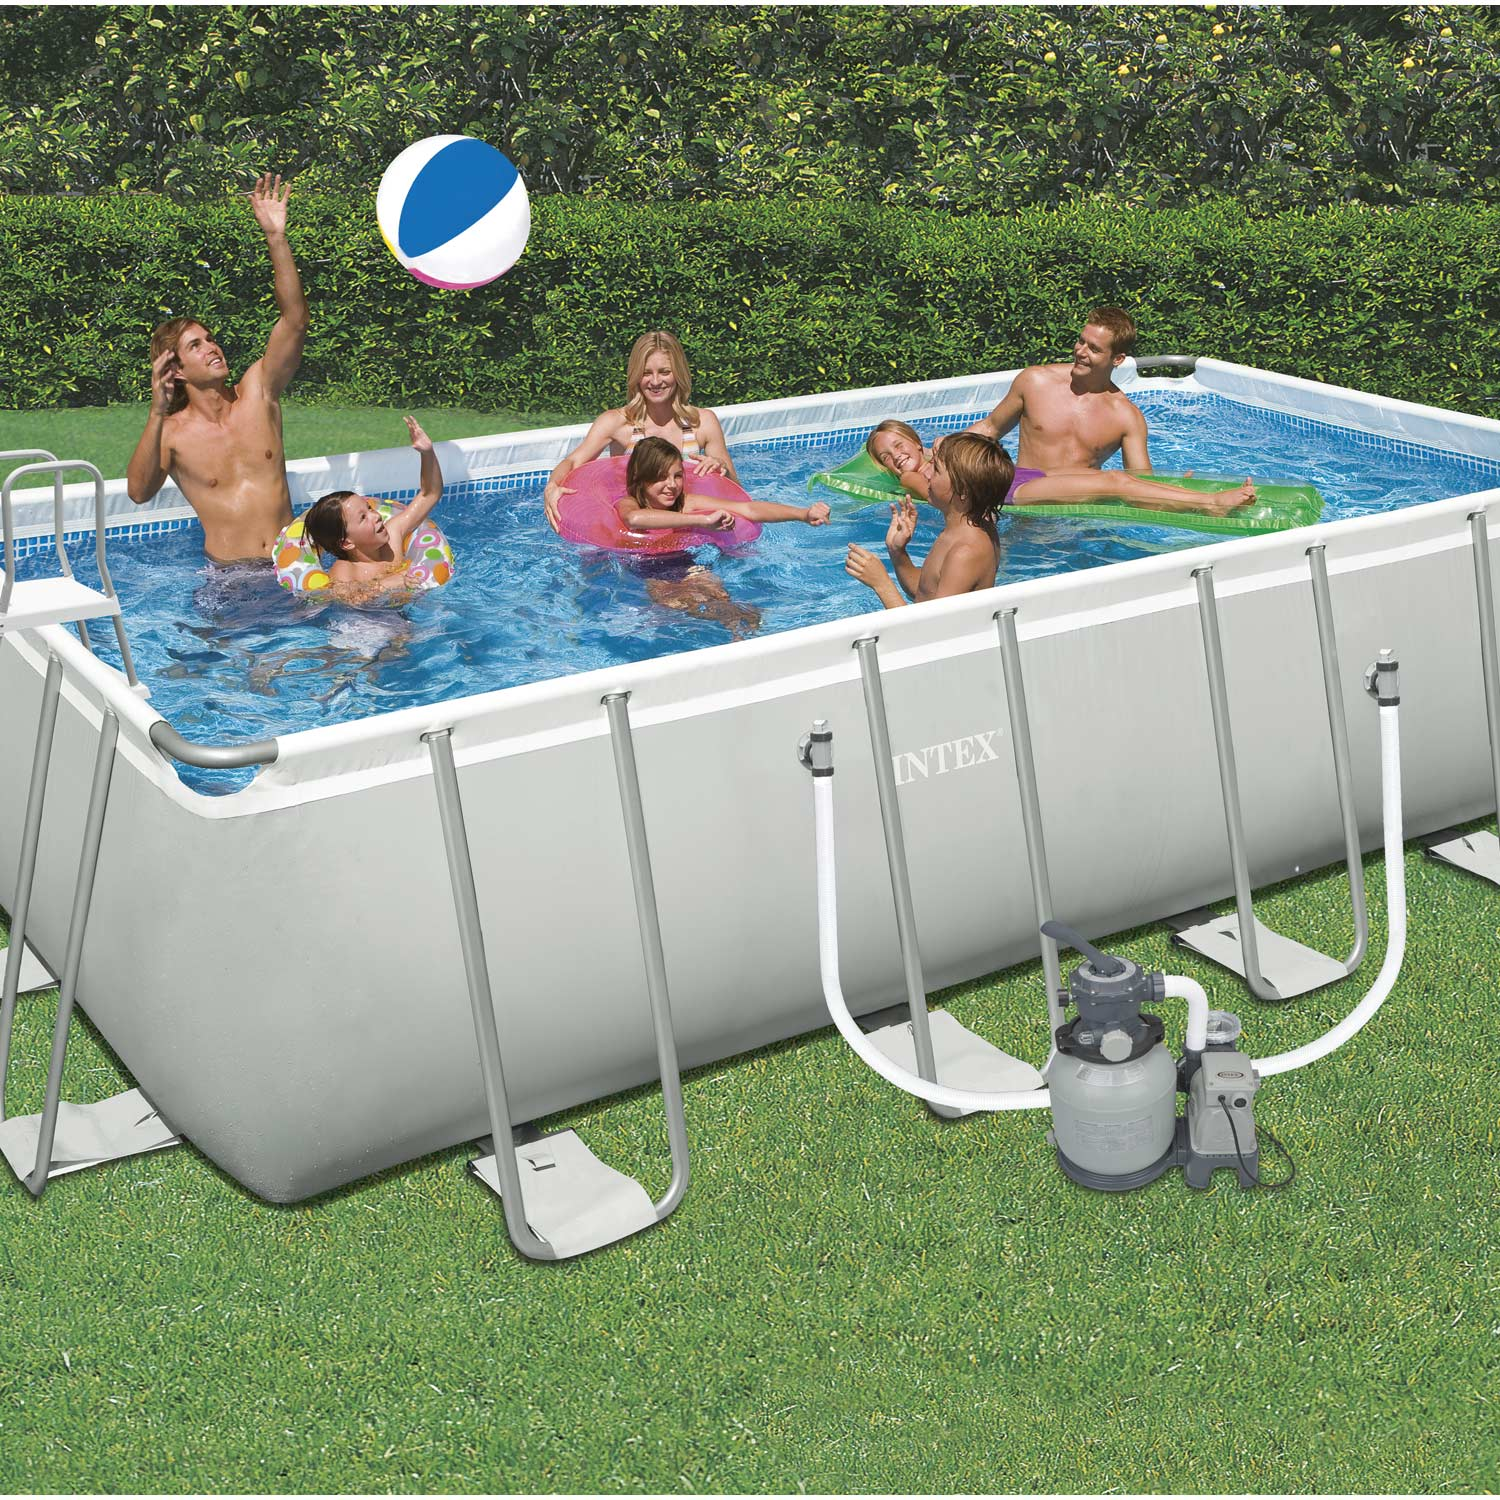 Piscine hors sol autoportante tubulaire intex l x l for Piscine hors sol bois rectangulaire